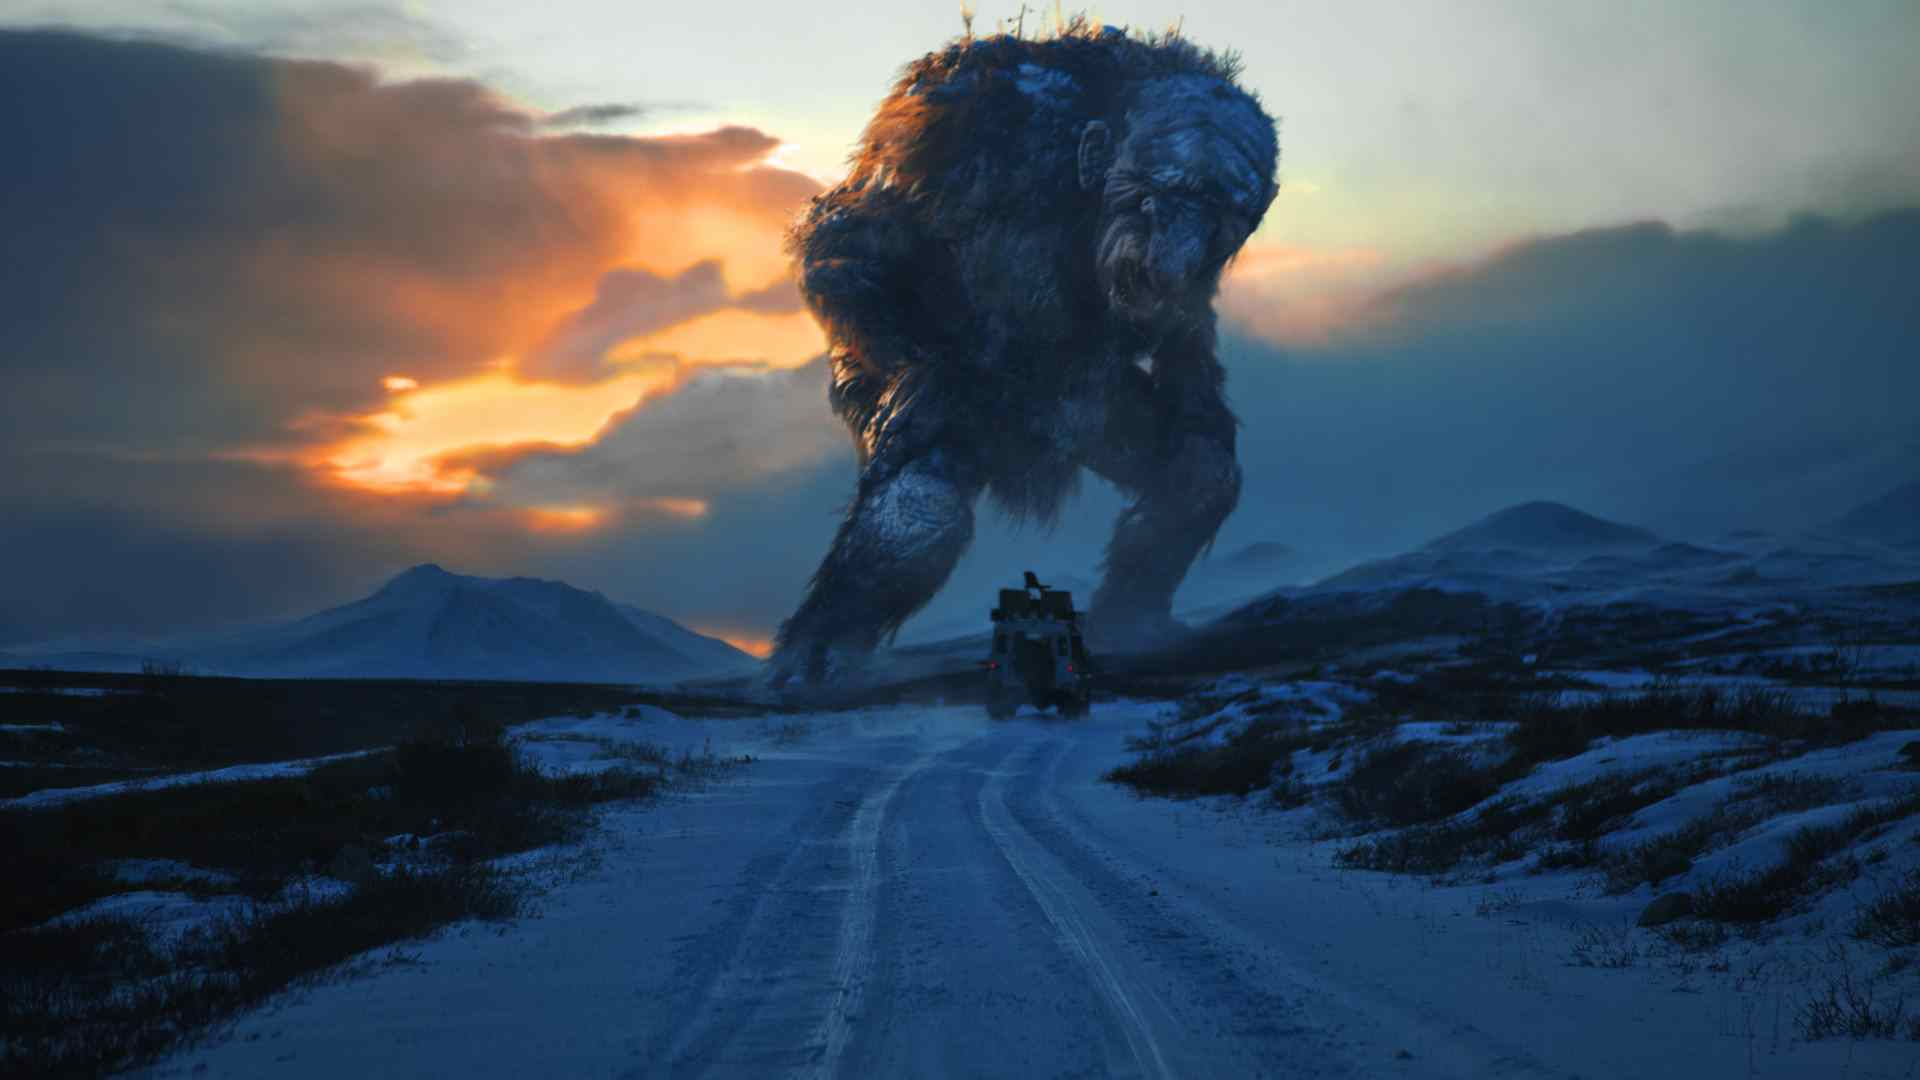 Jotnar the troll from the movie shot in Norway about trolls.